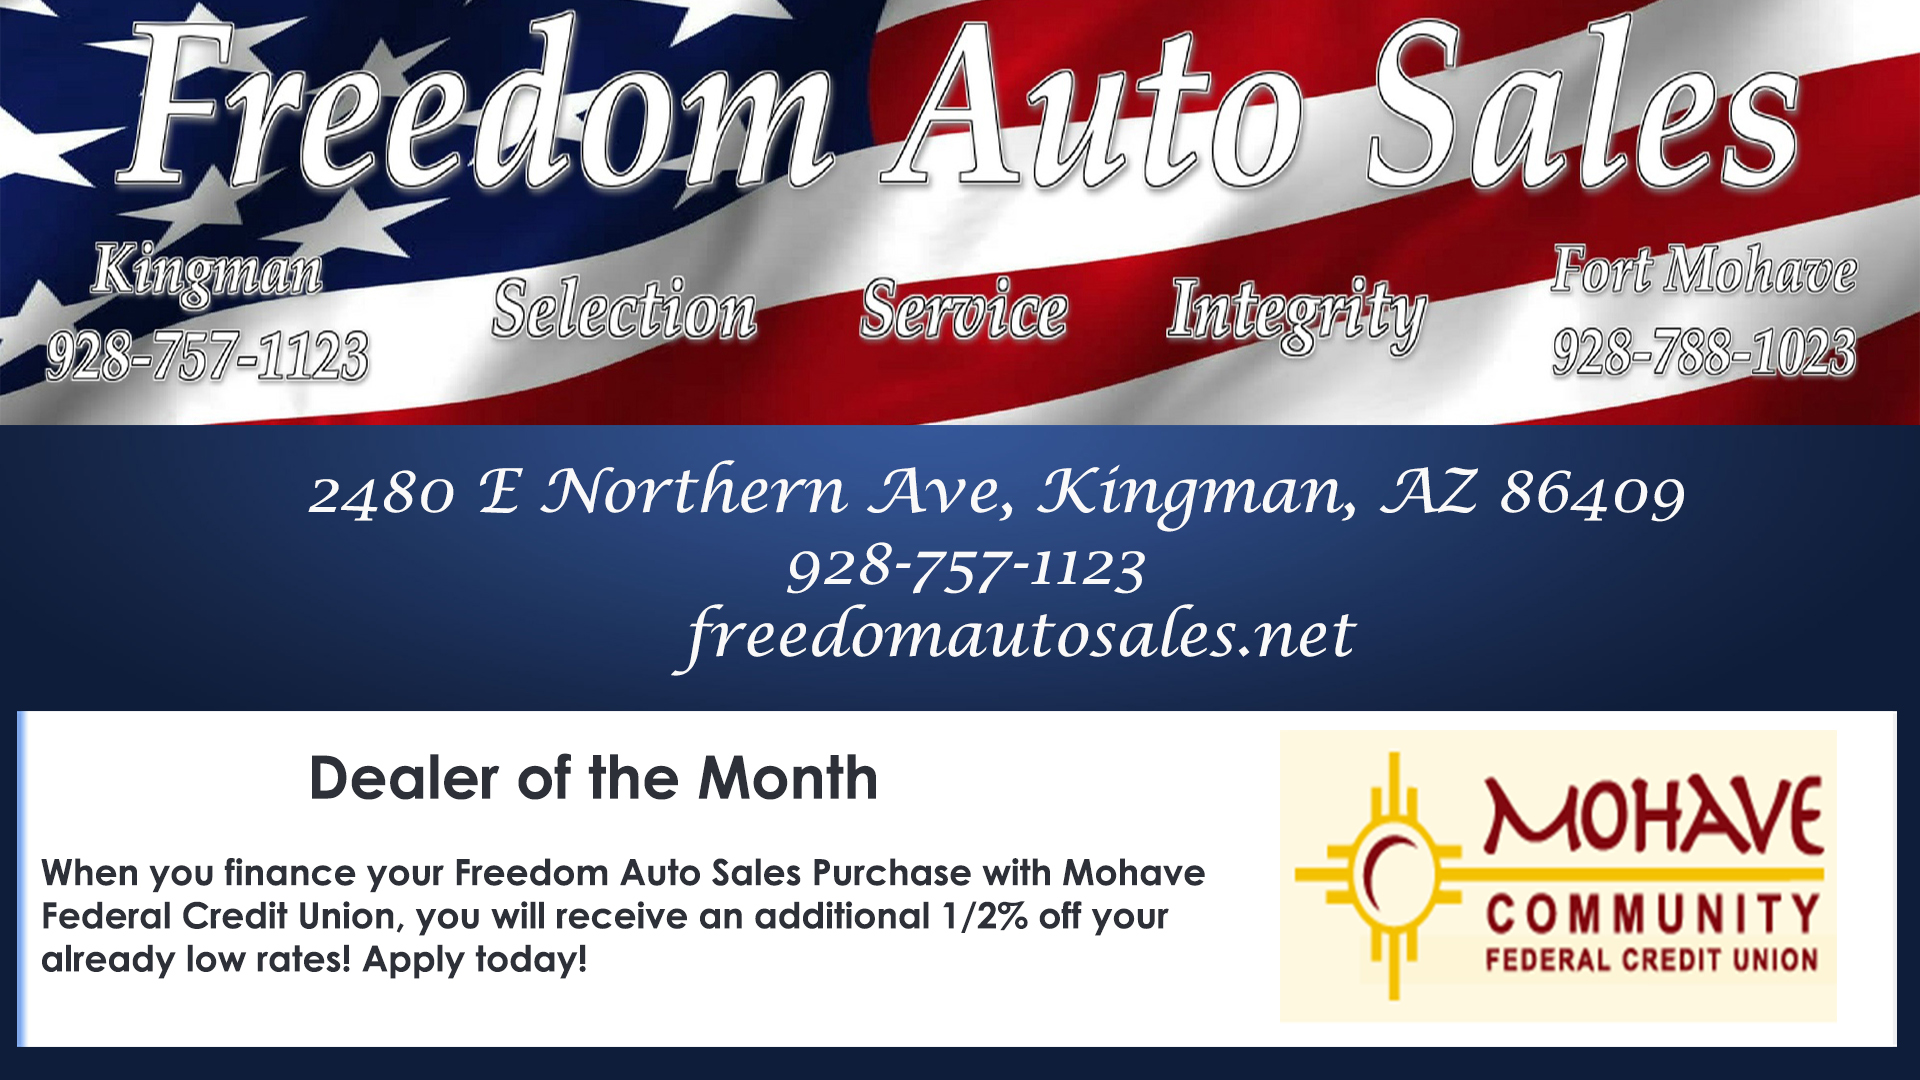 Freedom Auto Sales is our dealer of the month! Call us at 928-753-8000 for more information.